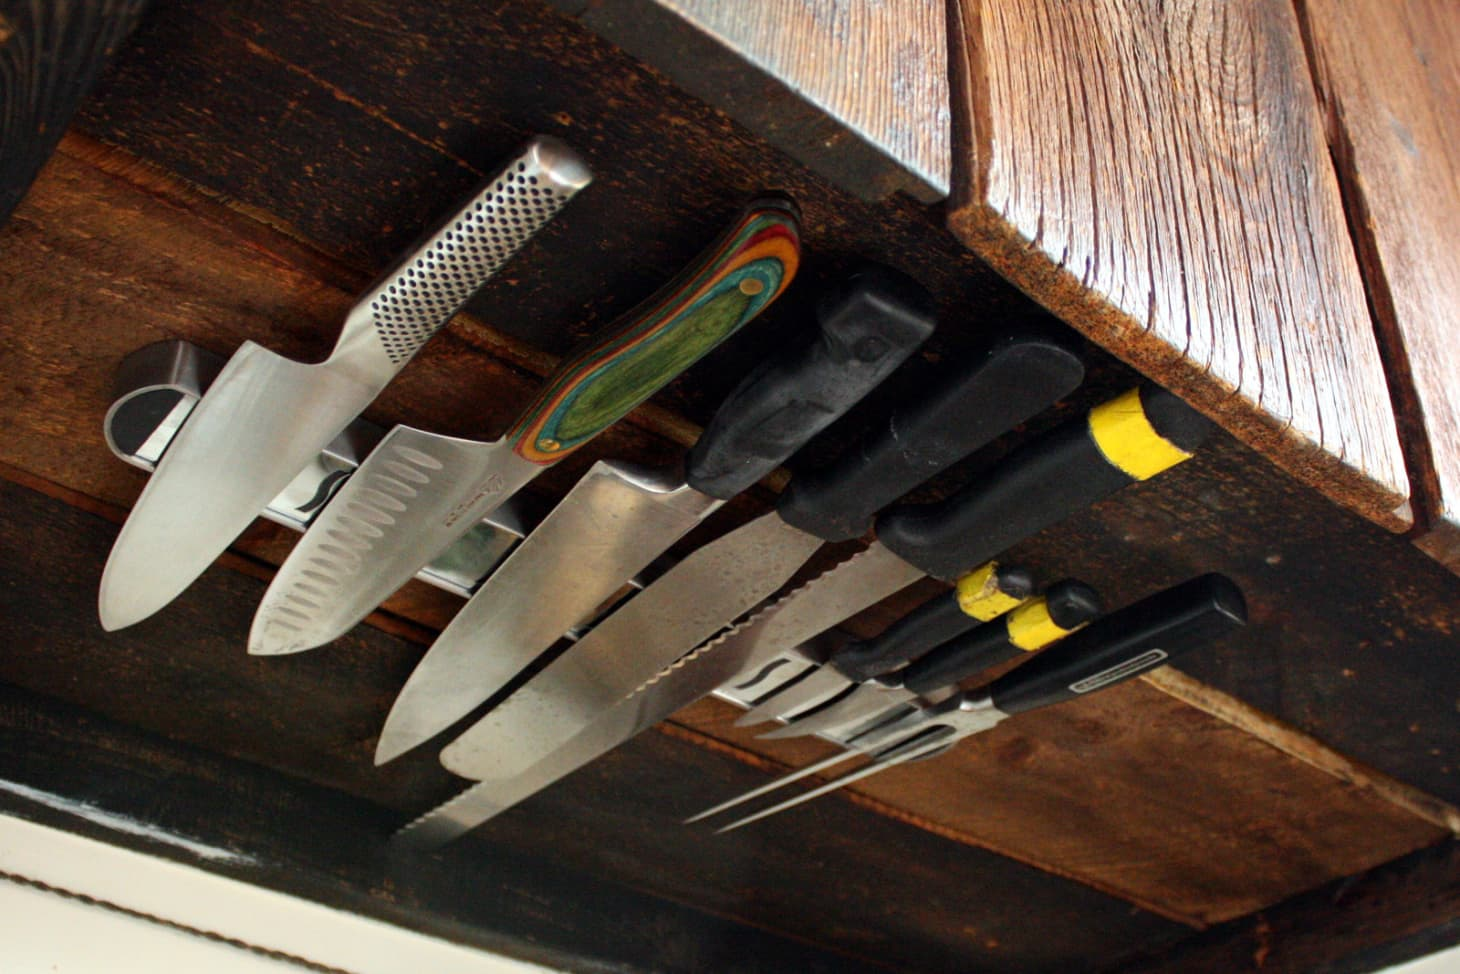 Magnetic Knife Holder Garage Toy Tool Storage Ideas Apartment